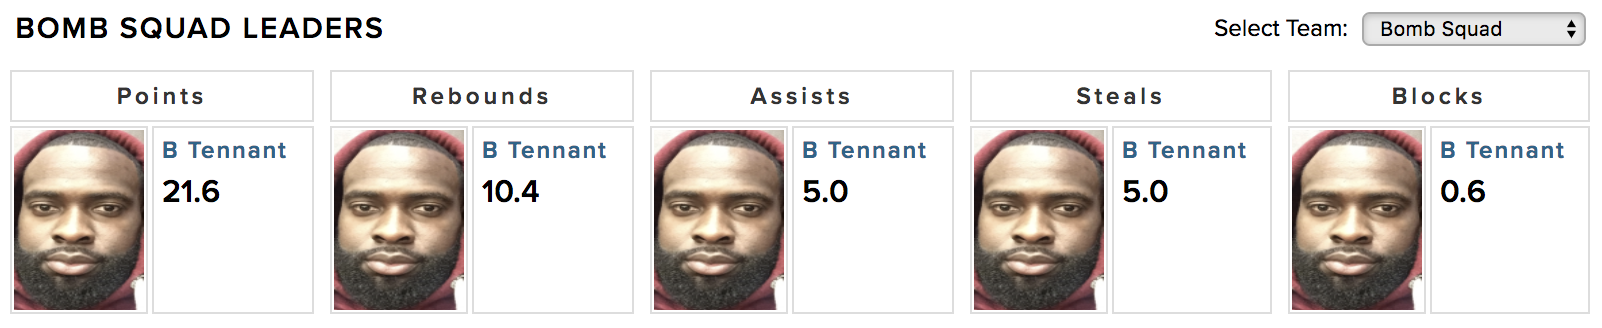 Tennant has done a little bit of everything for Bomb Squad this season.